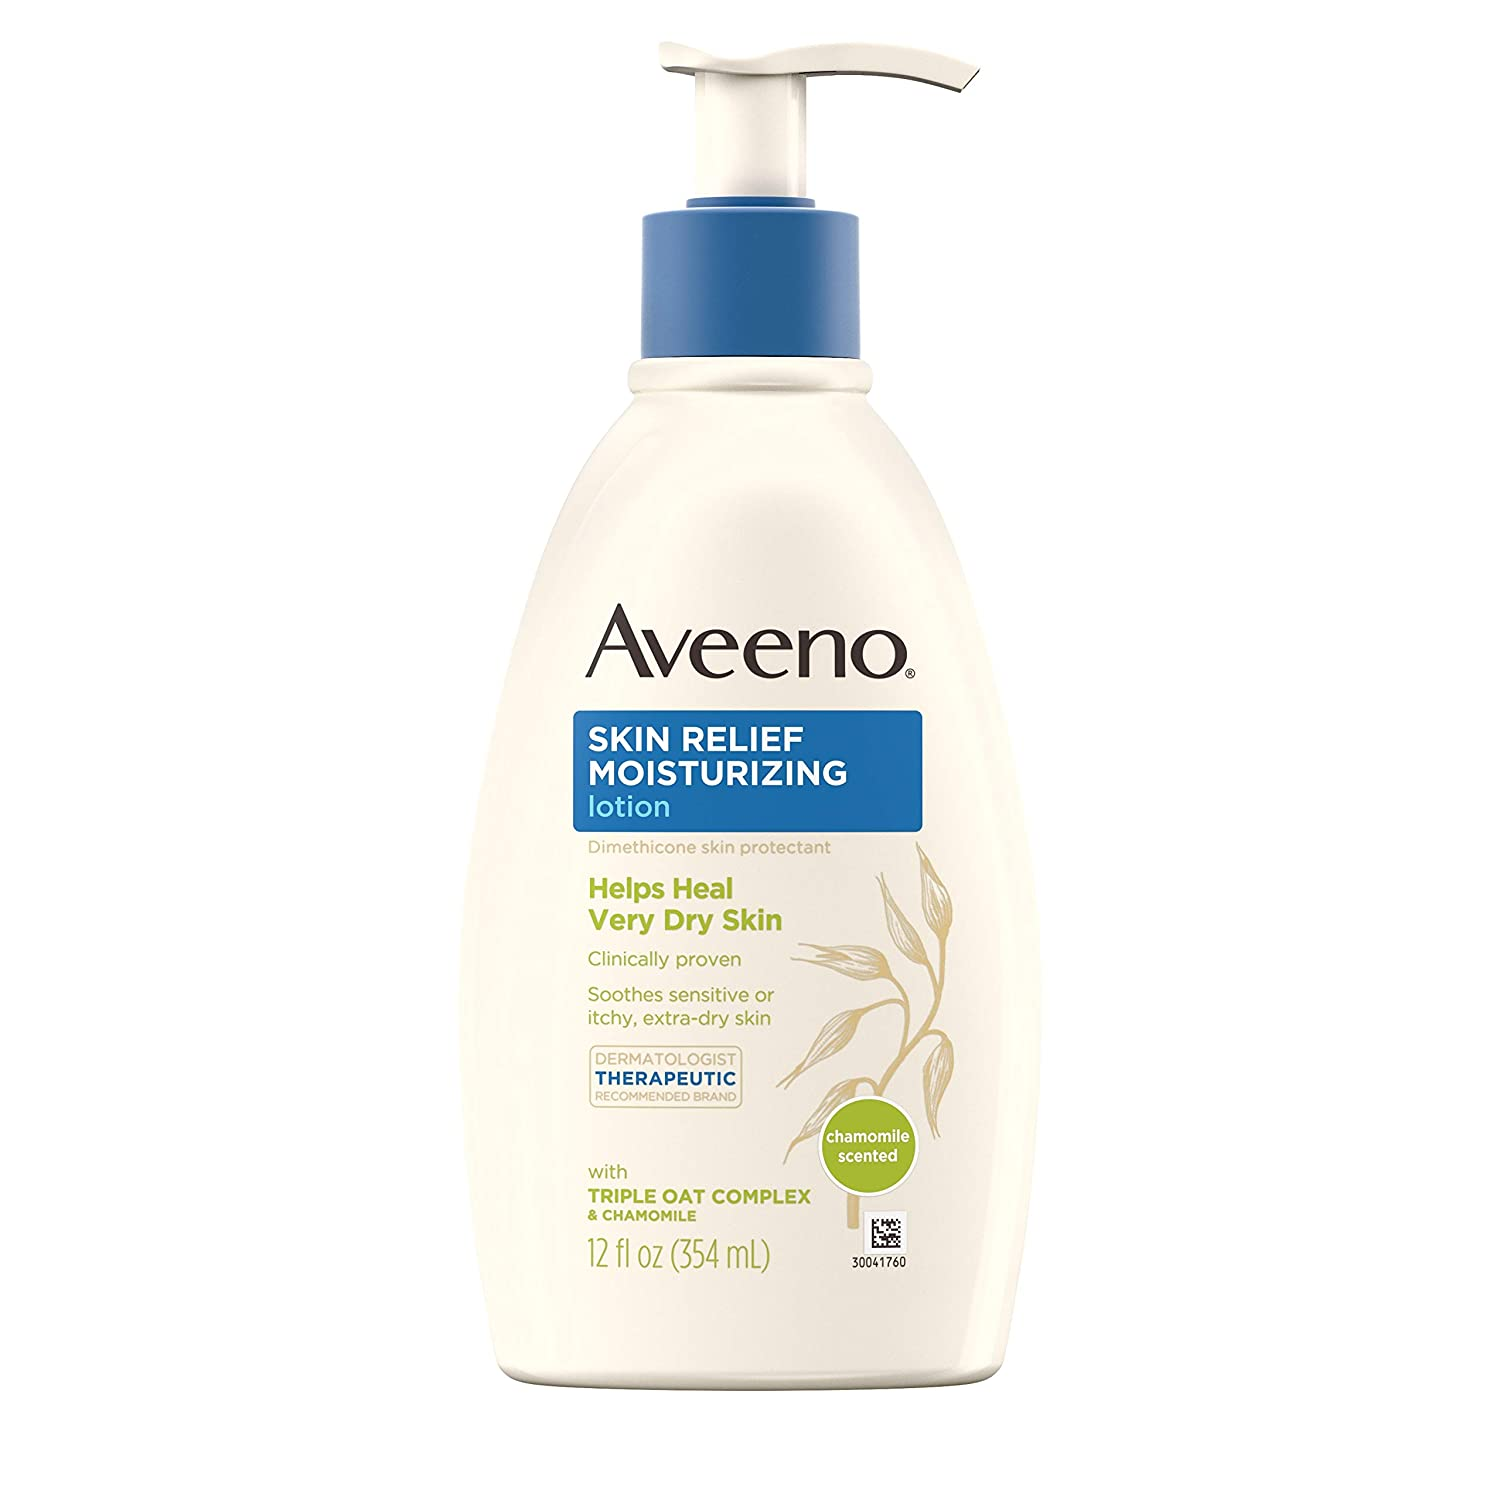 Aveeno Skin Relief Moisturizing Lotion with Chamomile Scent & Triple Oat Complex, Dimethicone Skin Protectant for Sensitive & Extra-Dry Itchy Skin, 12 fl. oz